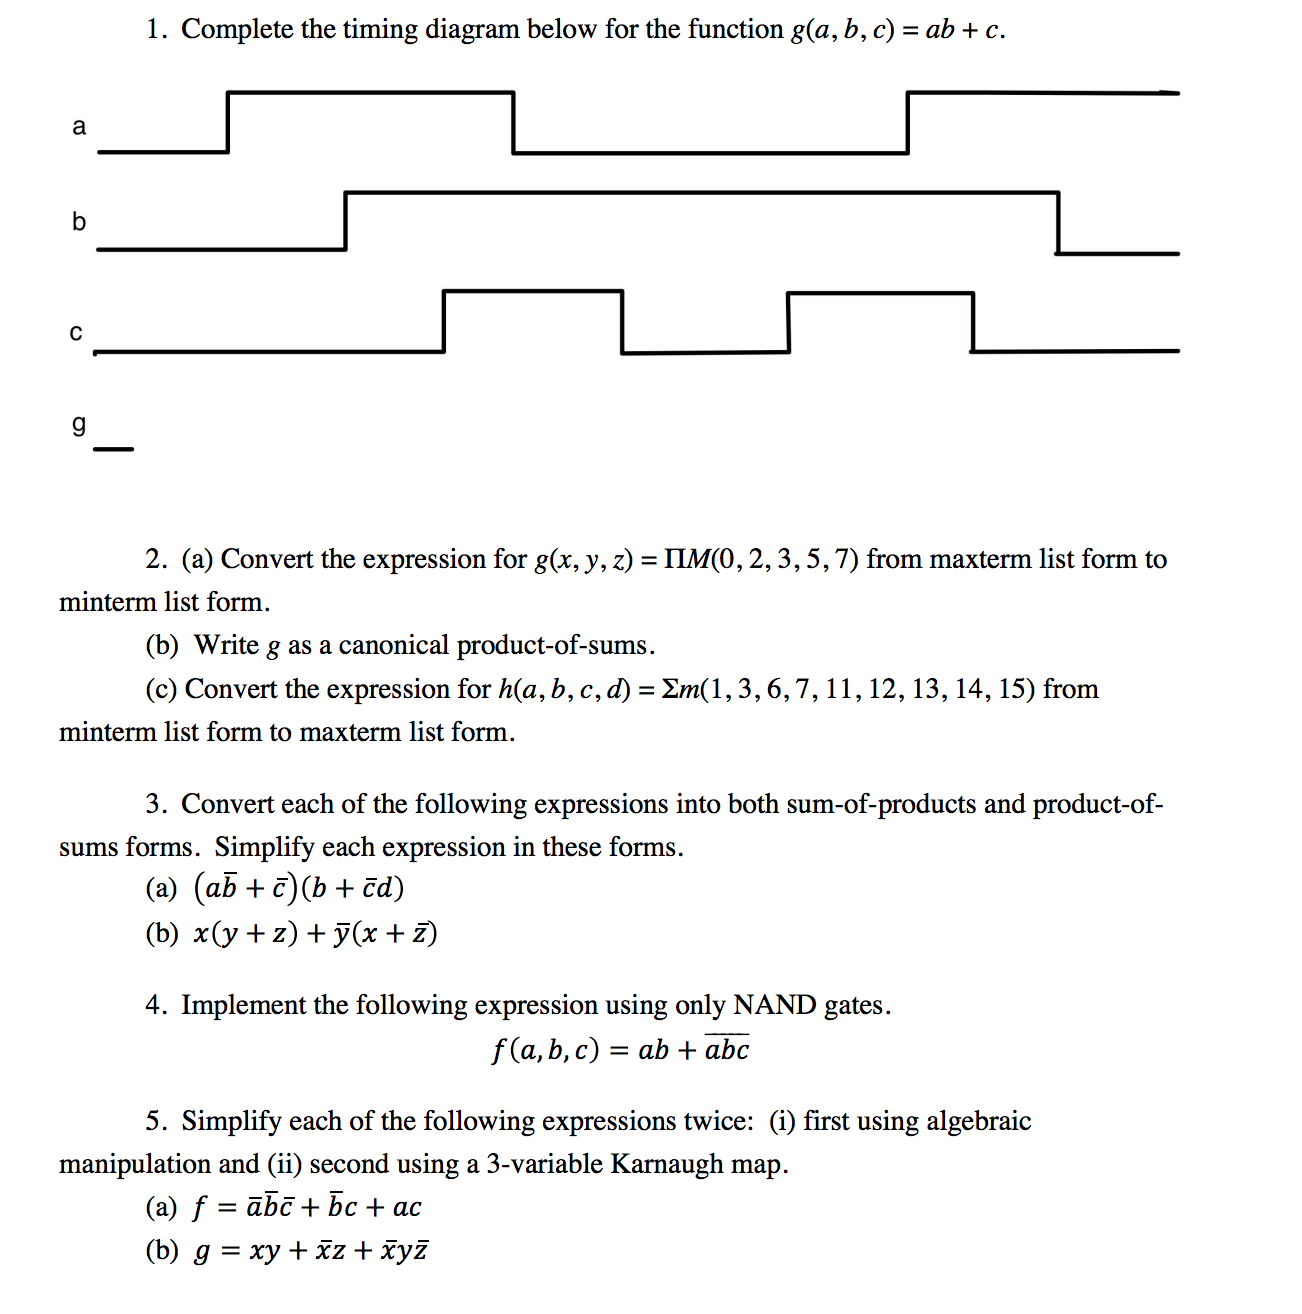 EECS 31/CSE 31/ICS 151 Homework 2 Questions with Solutions